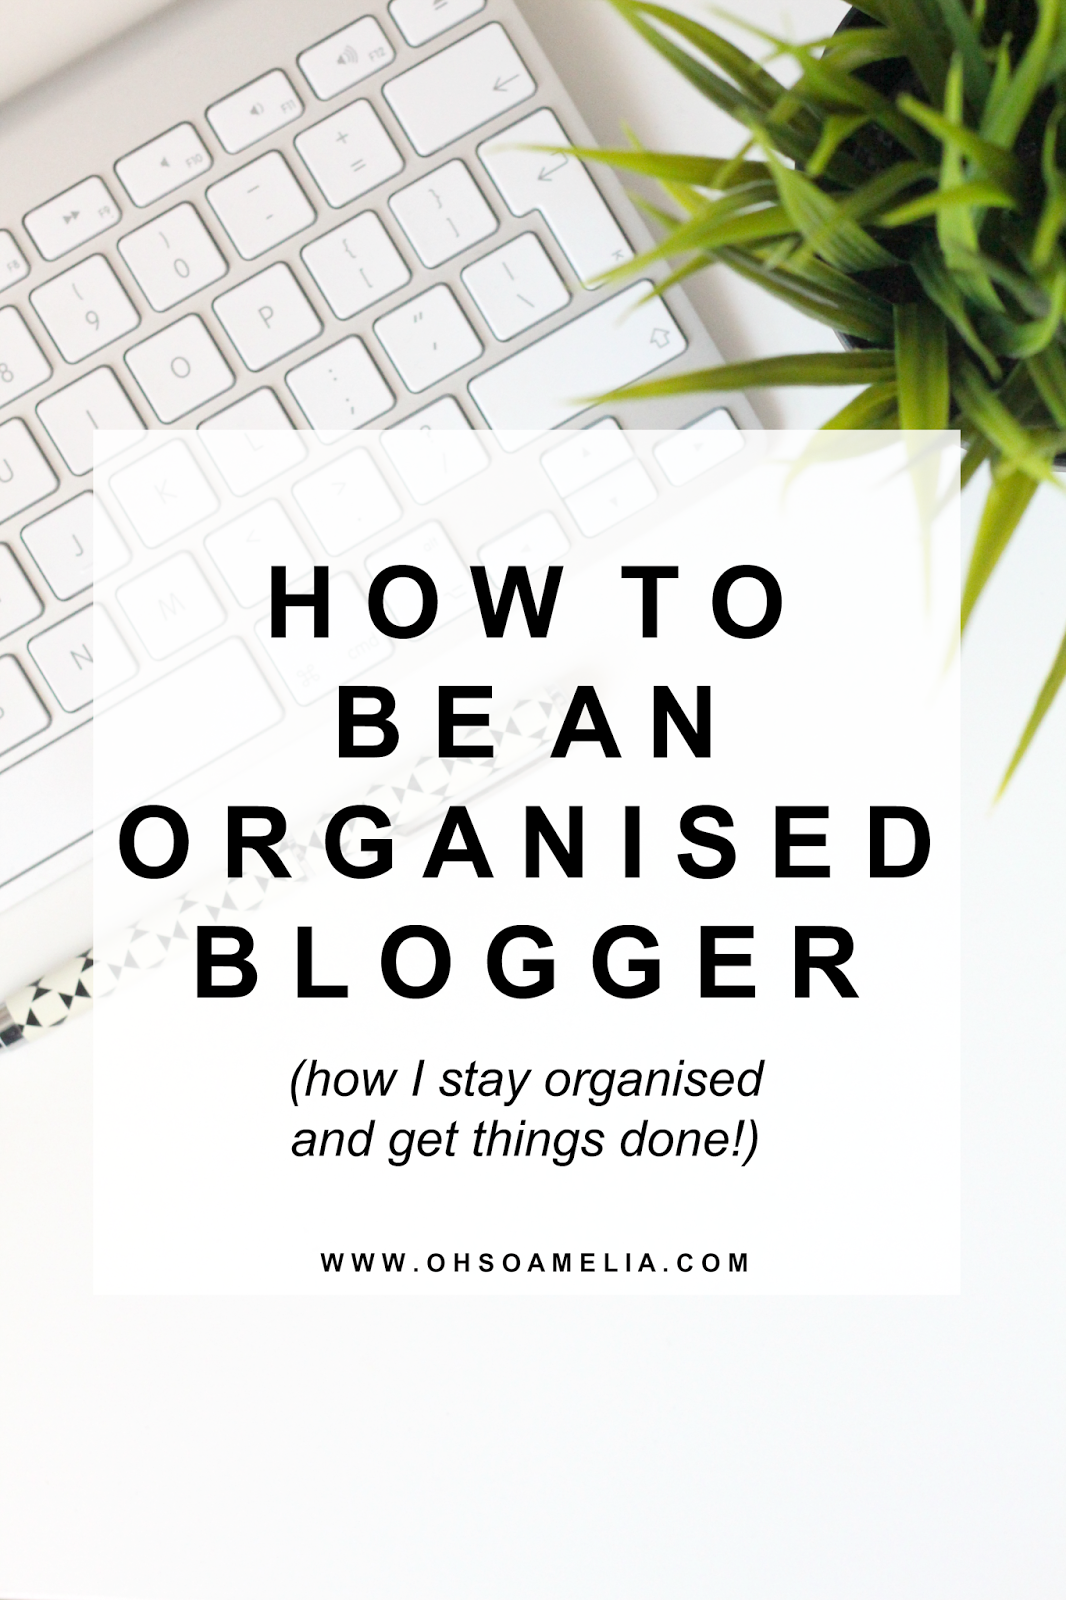 How to be an organised blogger